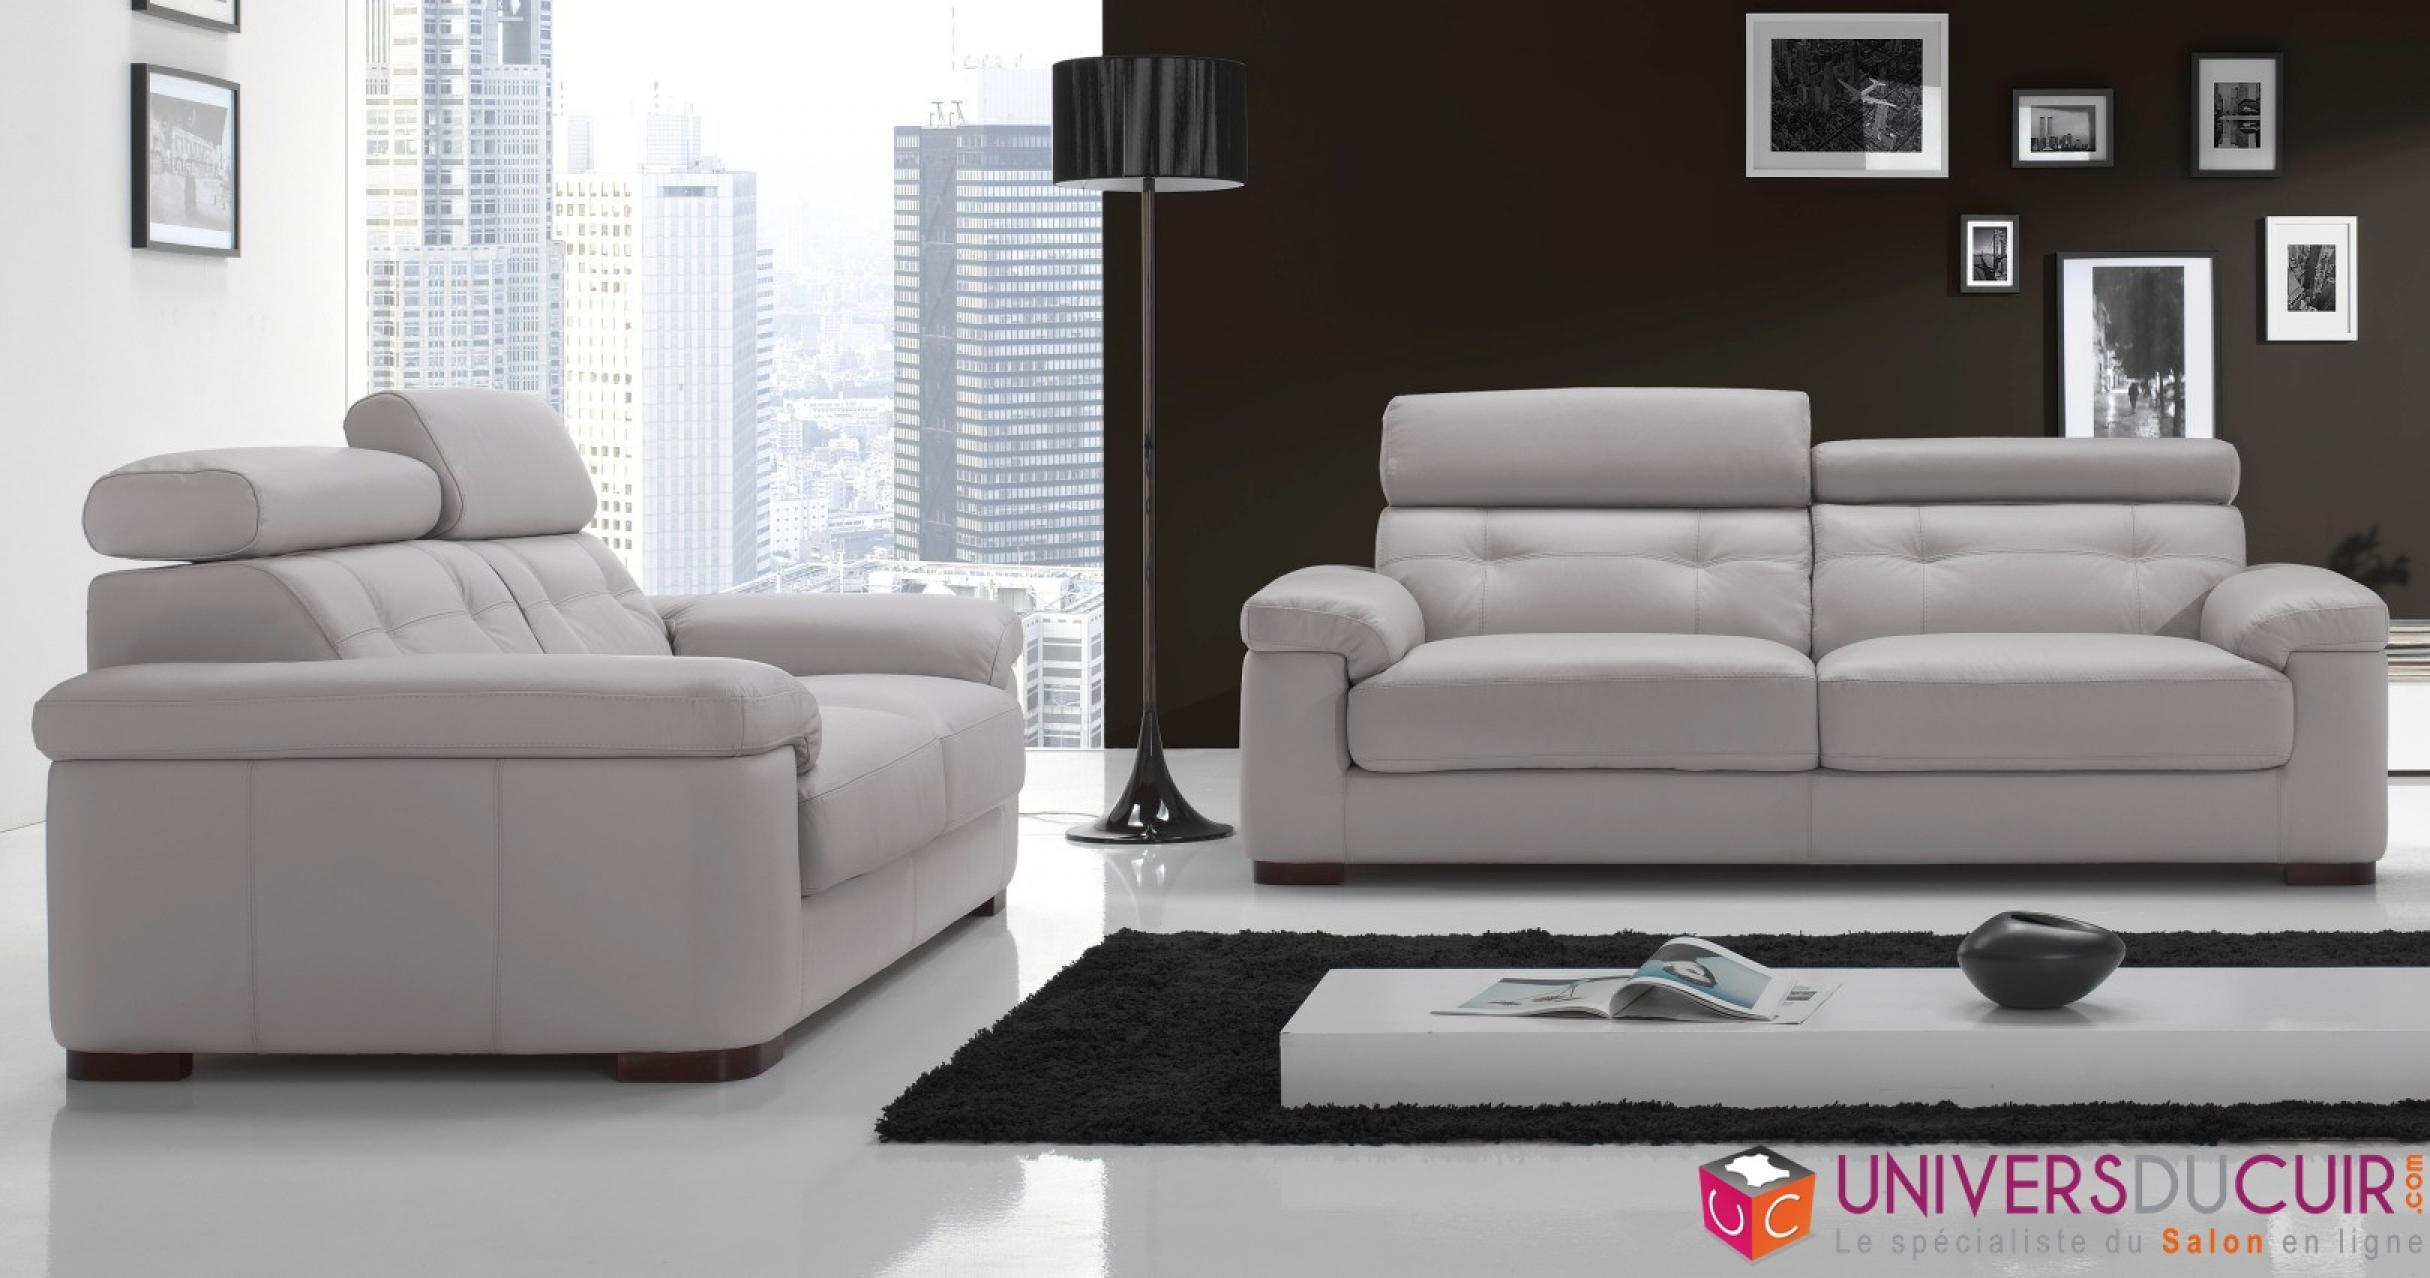 Canapé Convertible Cdiscount Inspirant Collection Centralillaw Design De Maison